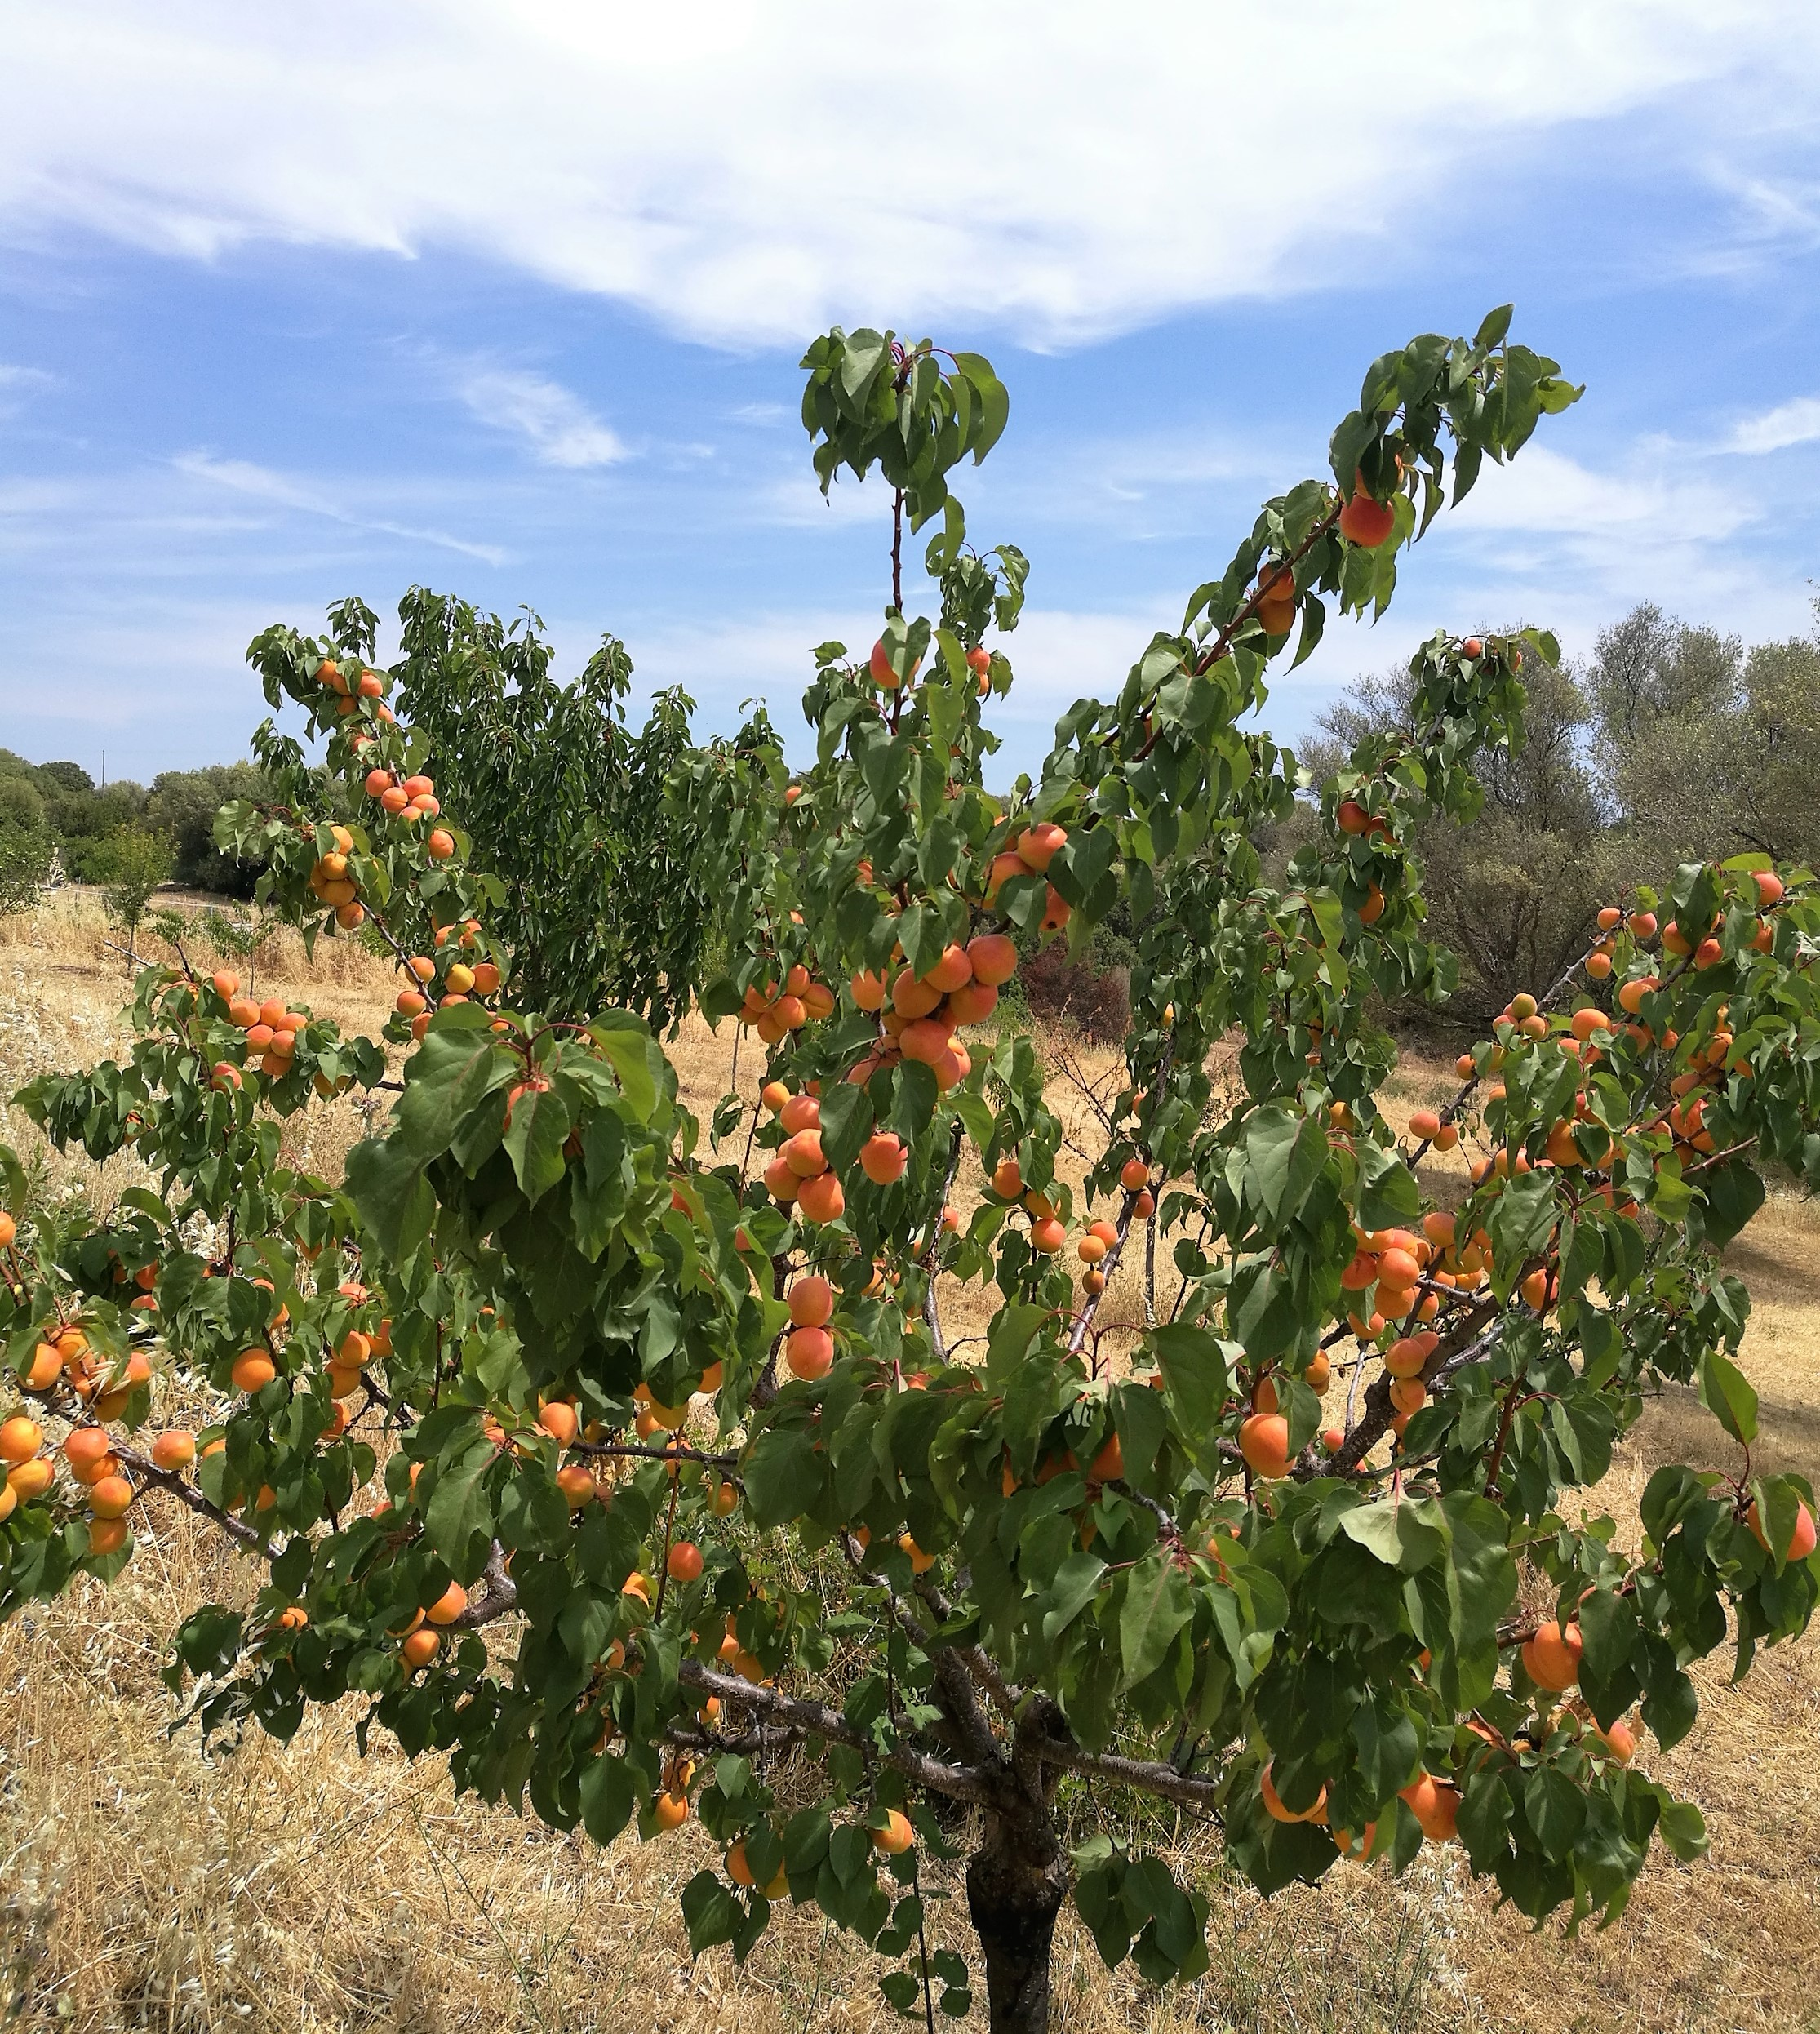 Apricot explosion!